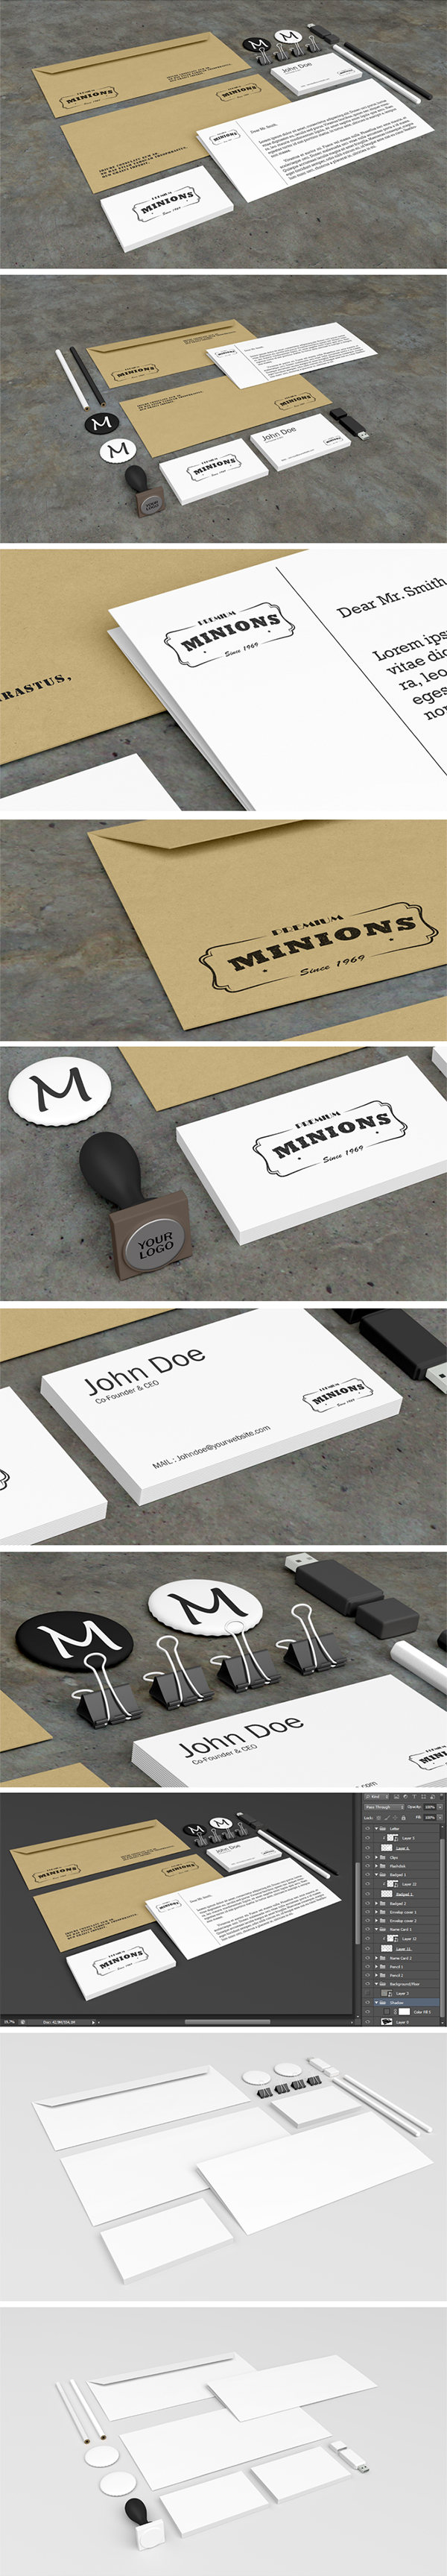 Free Stationery Mockups 305 MB graphiclist